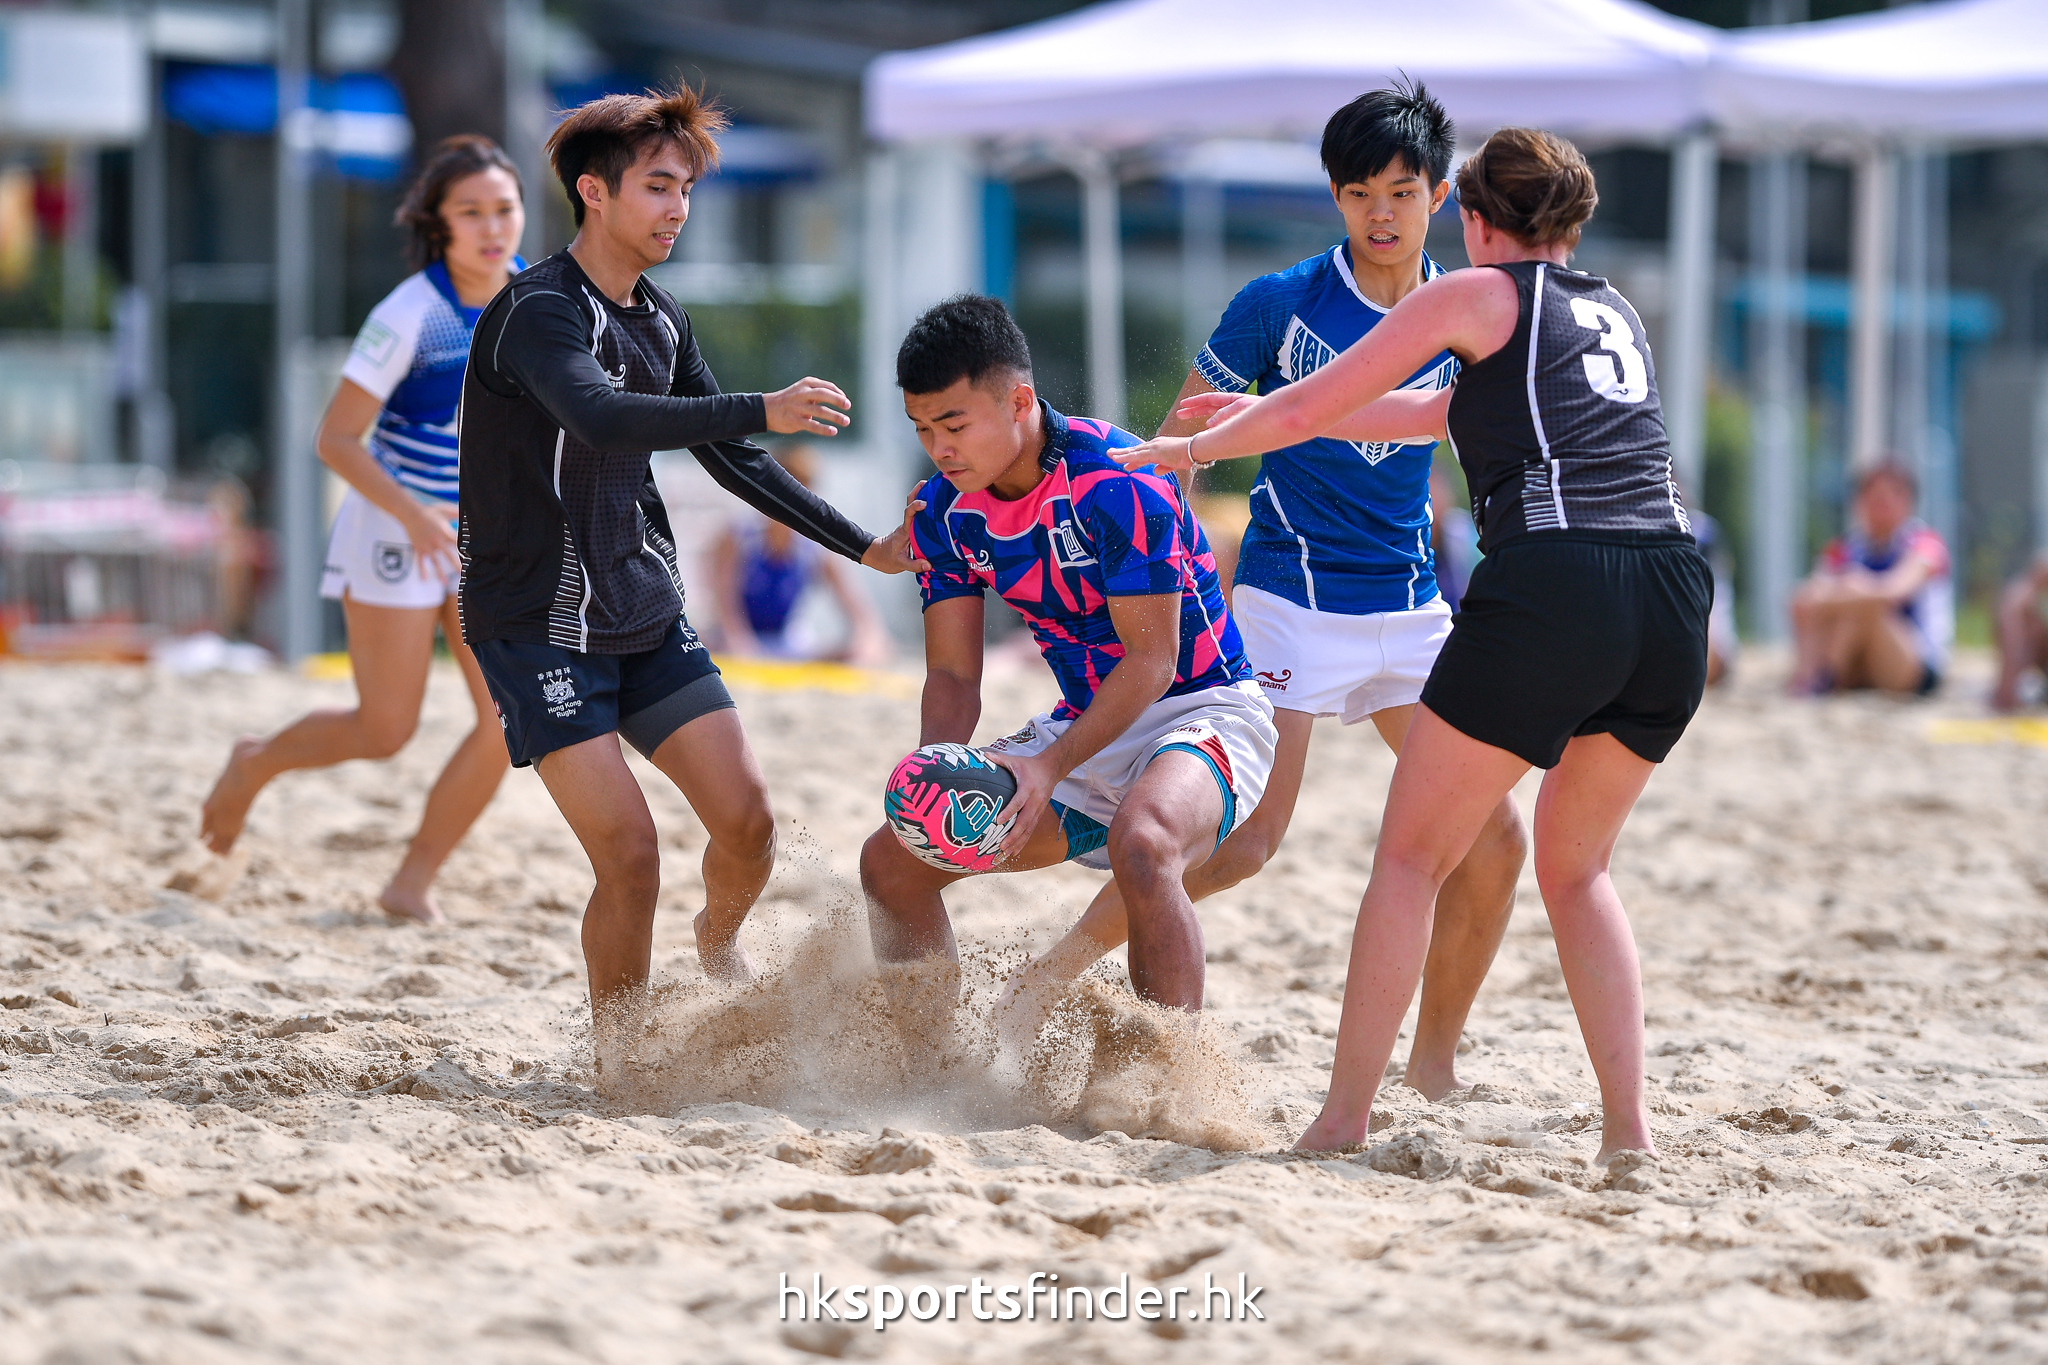 Her_GoldCoastTertiaryBeachRugby_16-11-12 11.05.25_000259.jpg